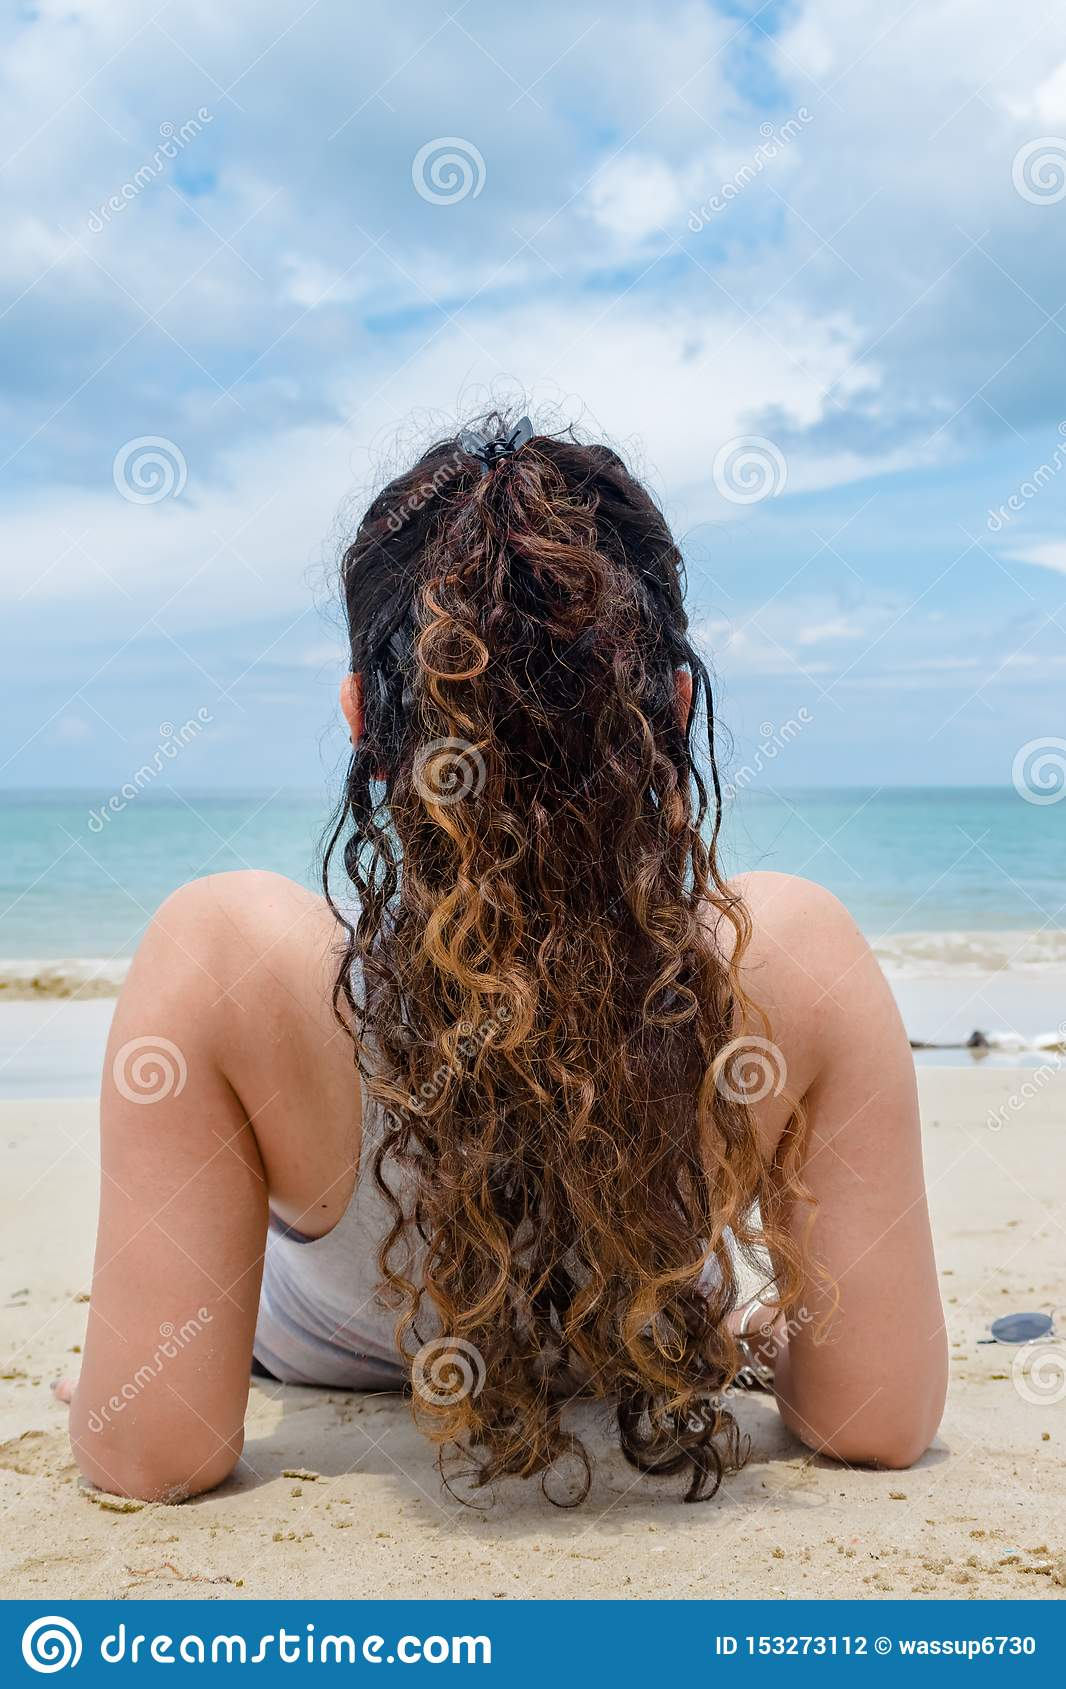 Back view of fair skinned Girl, having curly hairs of golden Color, relaxing & sunbathing solo on beach at exotic tropical island.